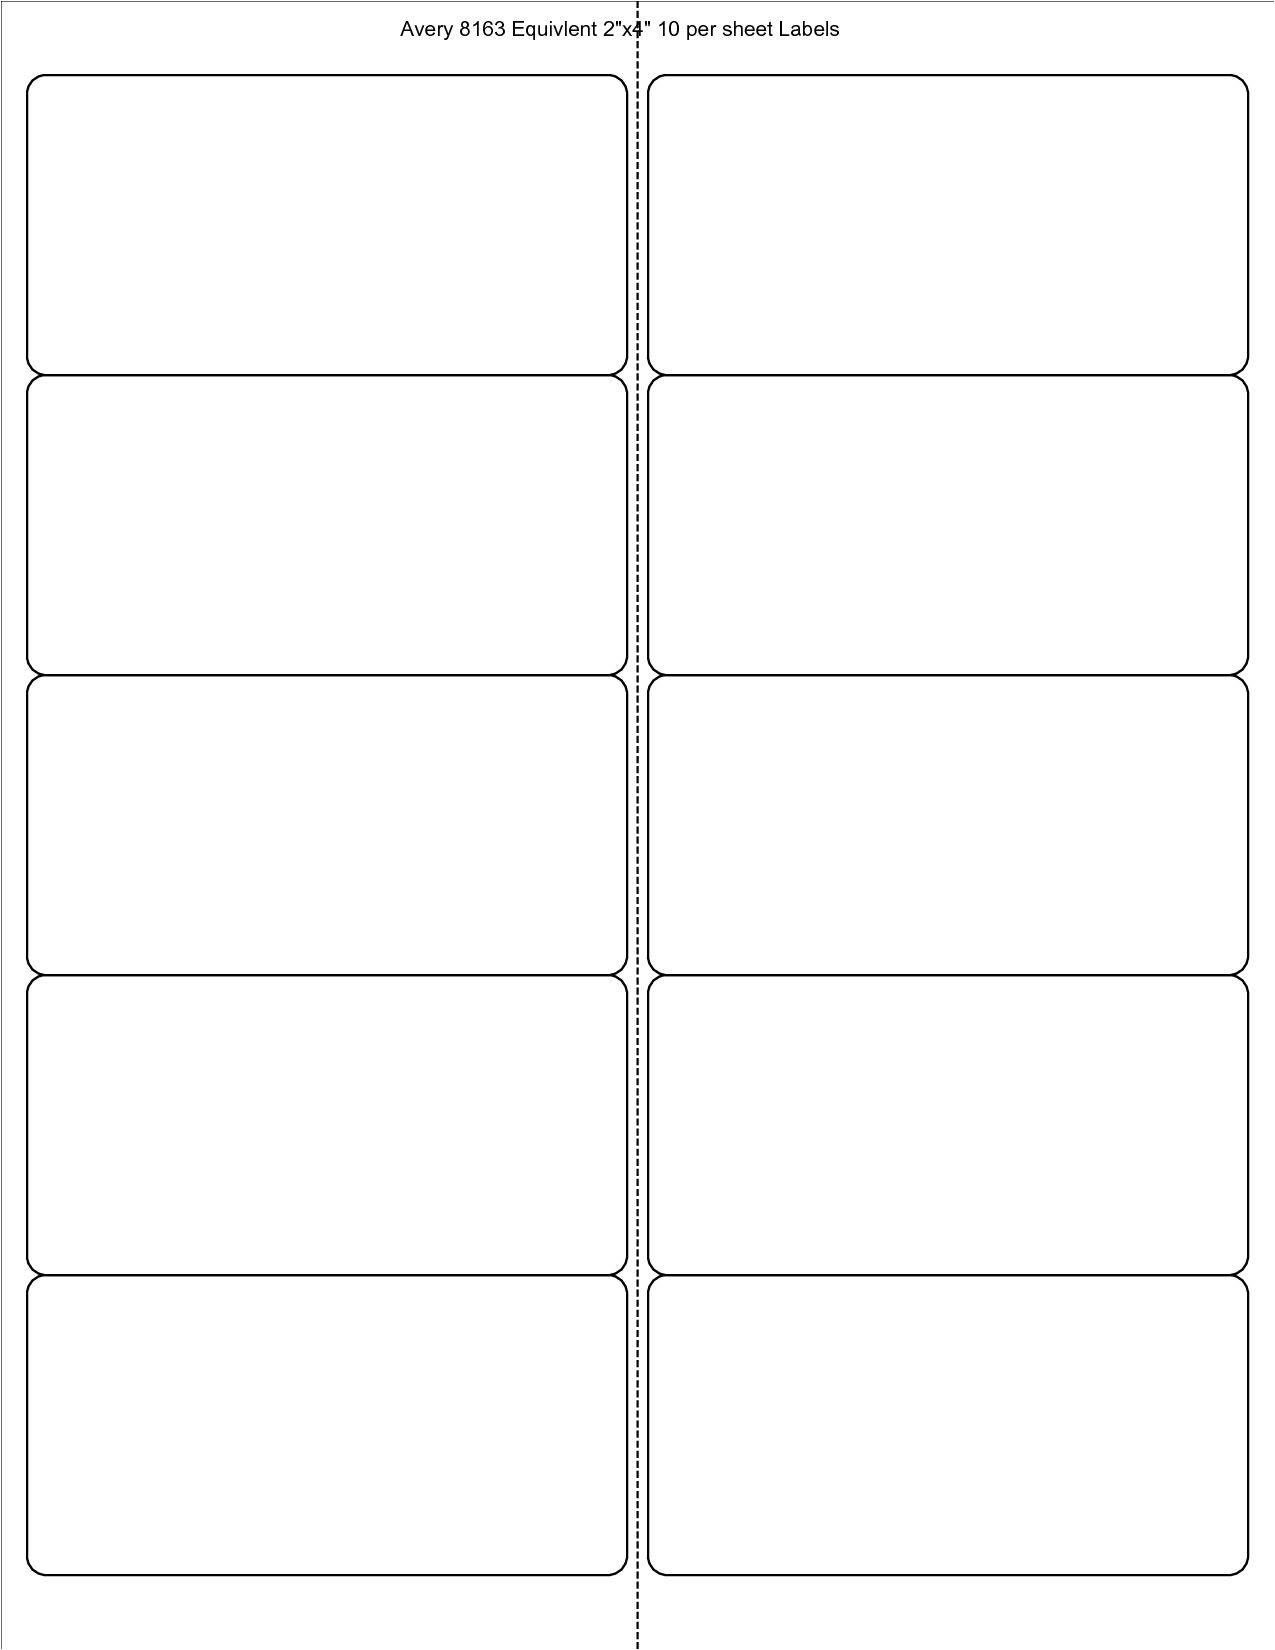 avery labels 8163 template